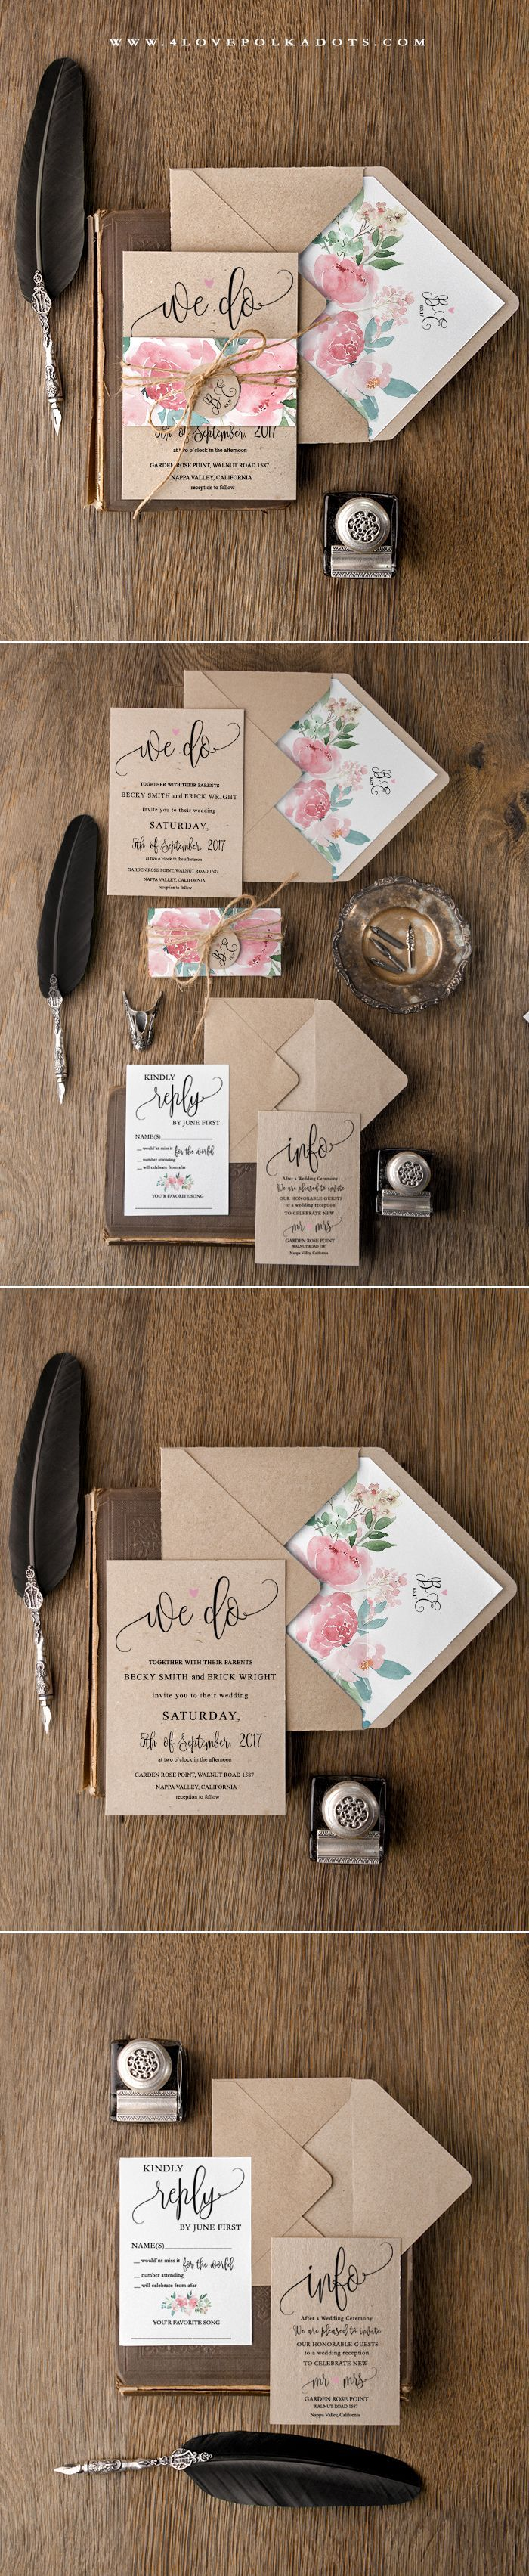 how to write muslim wedding invitation card%0A We Do  hearts  Boho Wedding Invitations  Eco Papers  Floral Printing  u      Calligraphy writing